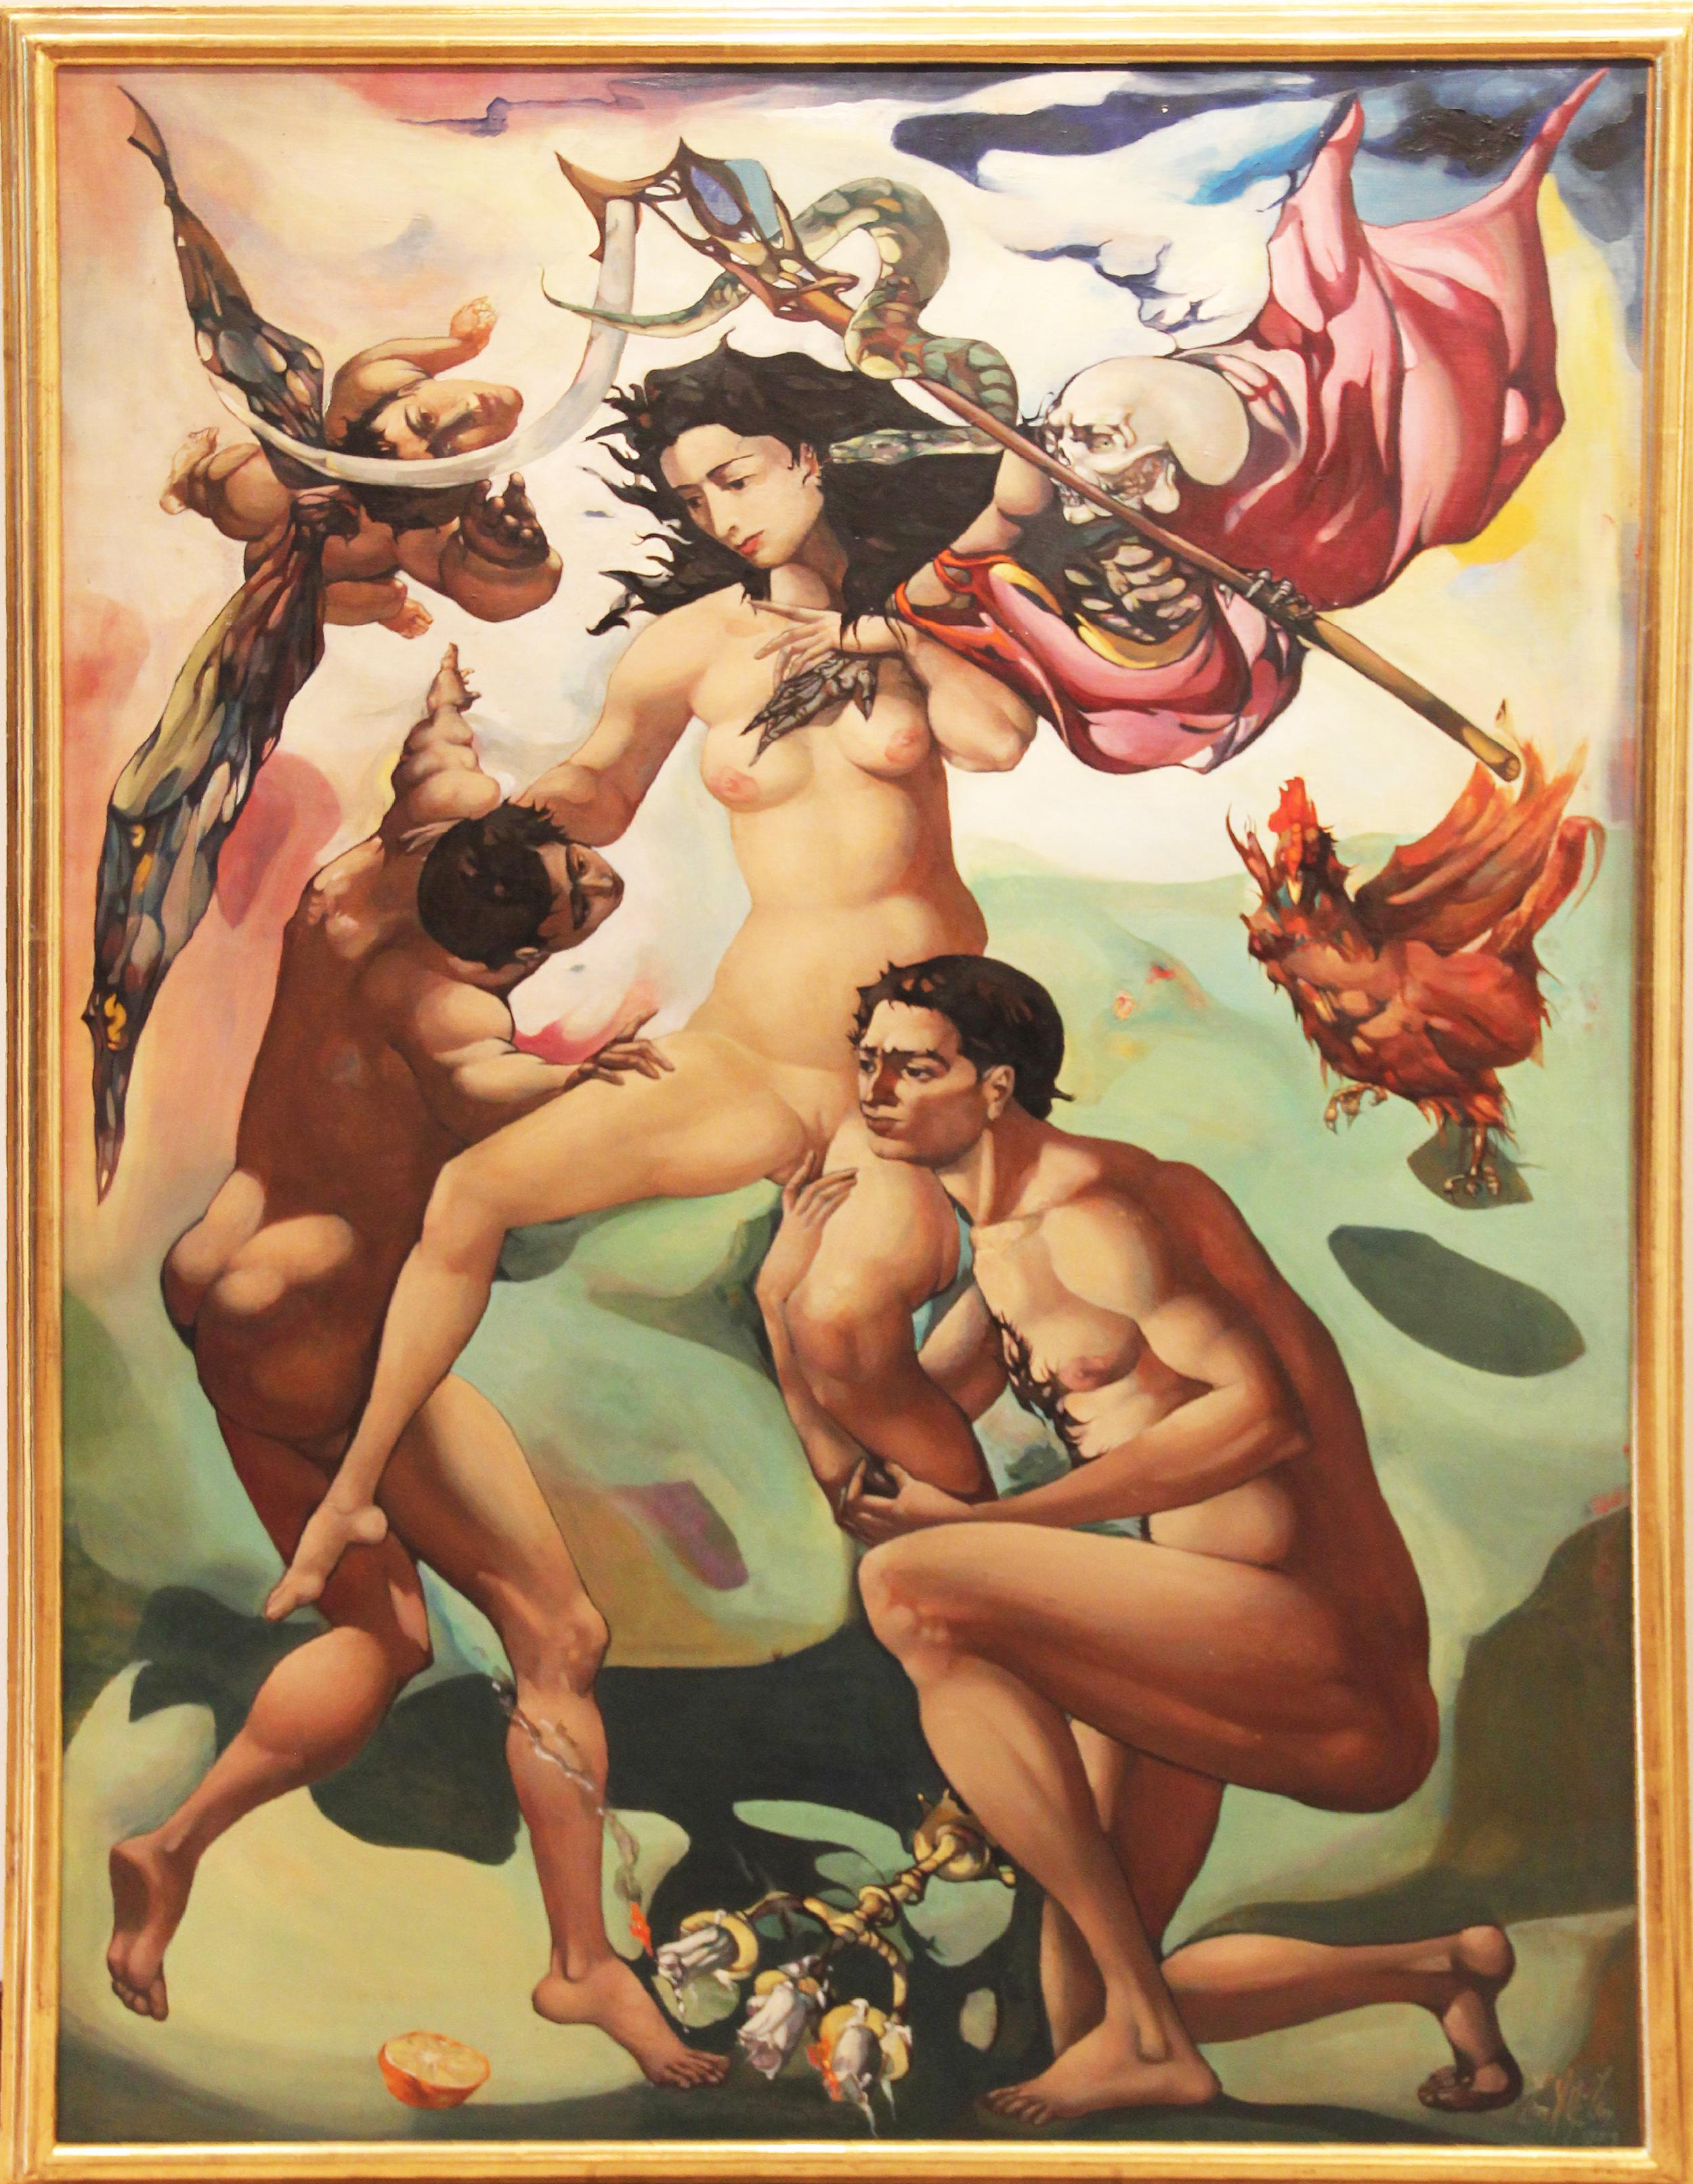 Venus Retrieved from the Hands of Death, Surrealist, Nudes, 1959, Oil on Canvas